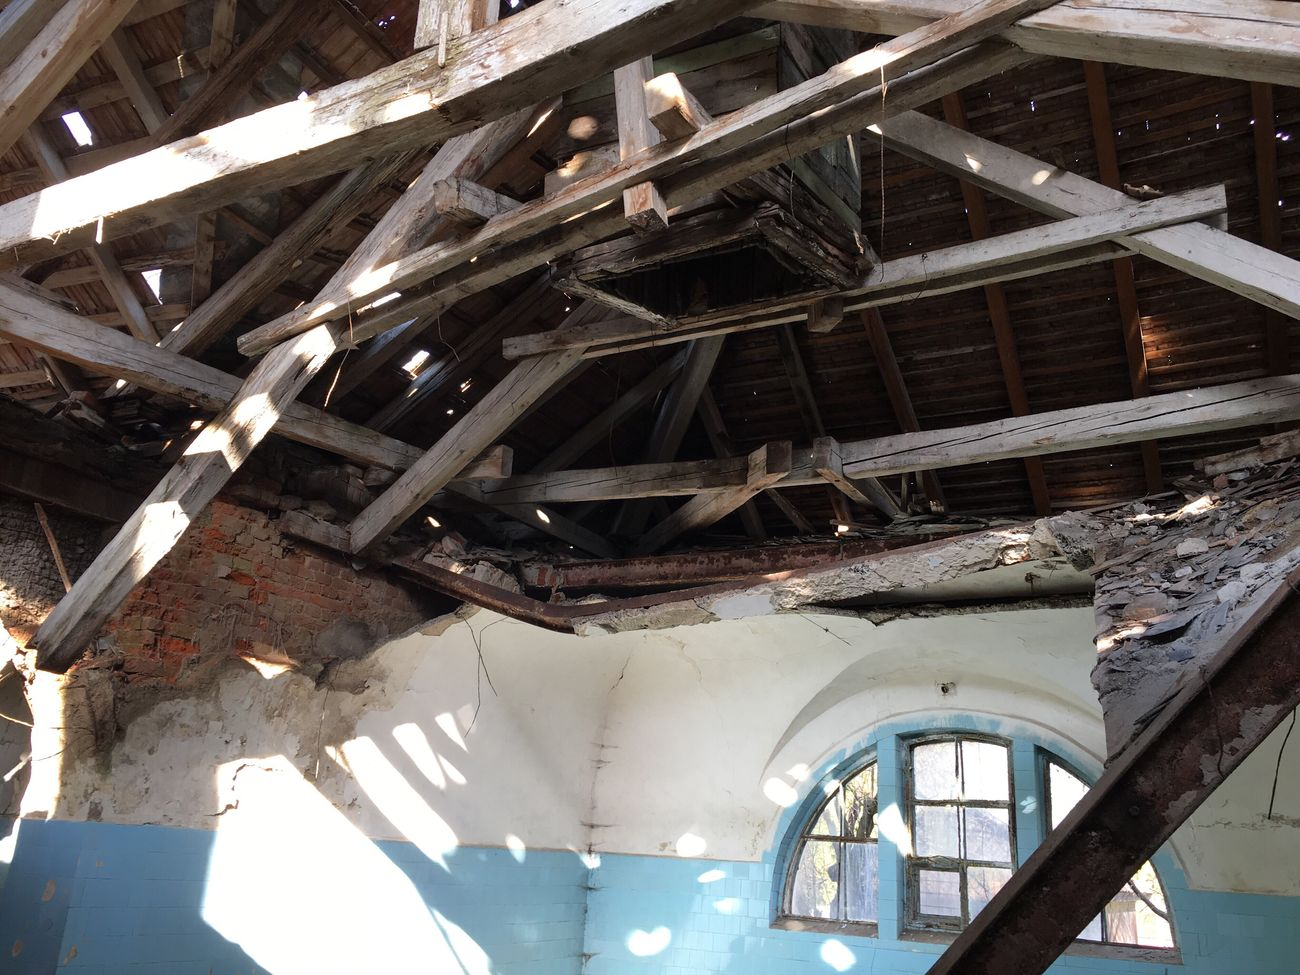 Abandoned Low Angle View No People Built Structure Indoors  Attic Architecture Day Destruction Discarded Damaged Construction Worn Out Weathered Bleak Run-down Bath Thermal Bath Ruined Building Ruins Ruin Demolished Architecture Bad Condition Indoors  Piano Moments